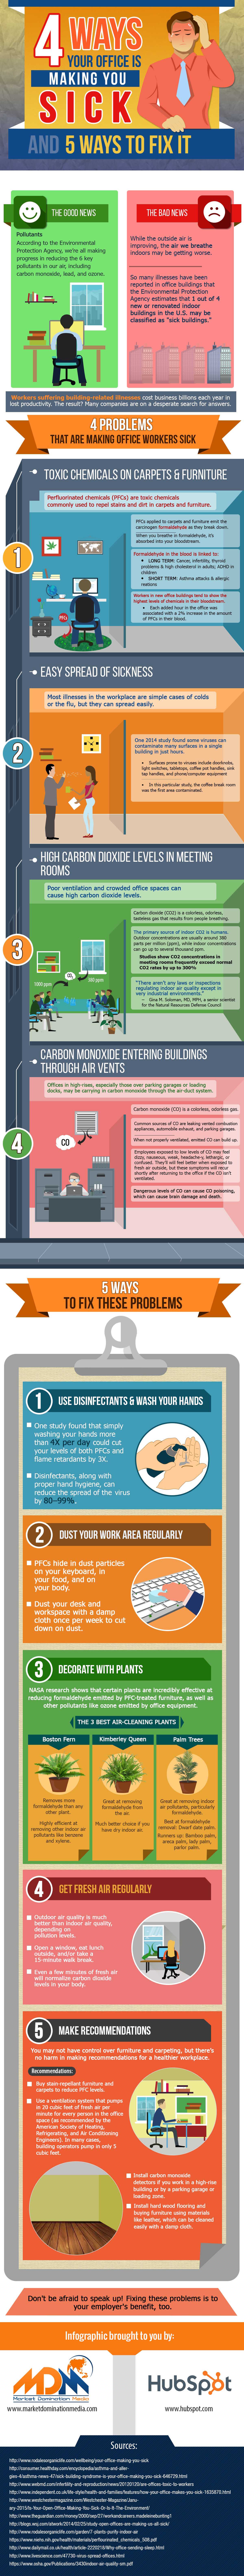 4_Ways_Your_Office_is_Making_You_Sick_And_5_Ways_to_Fix_It